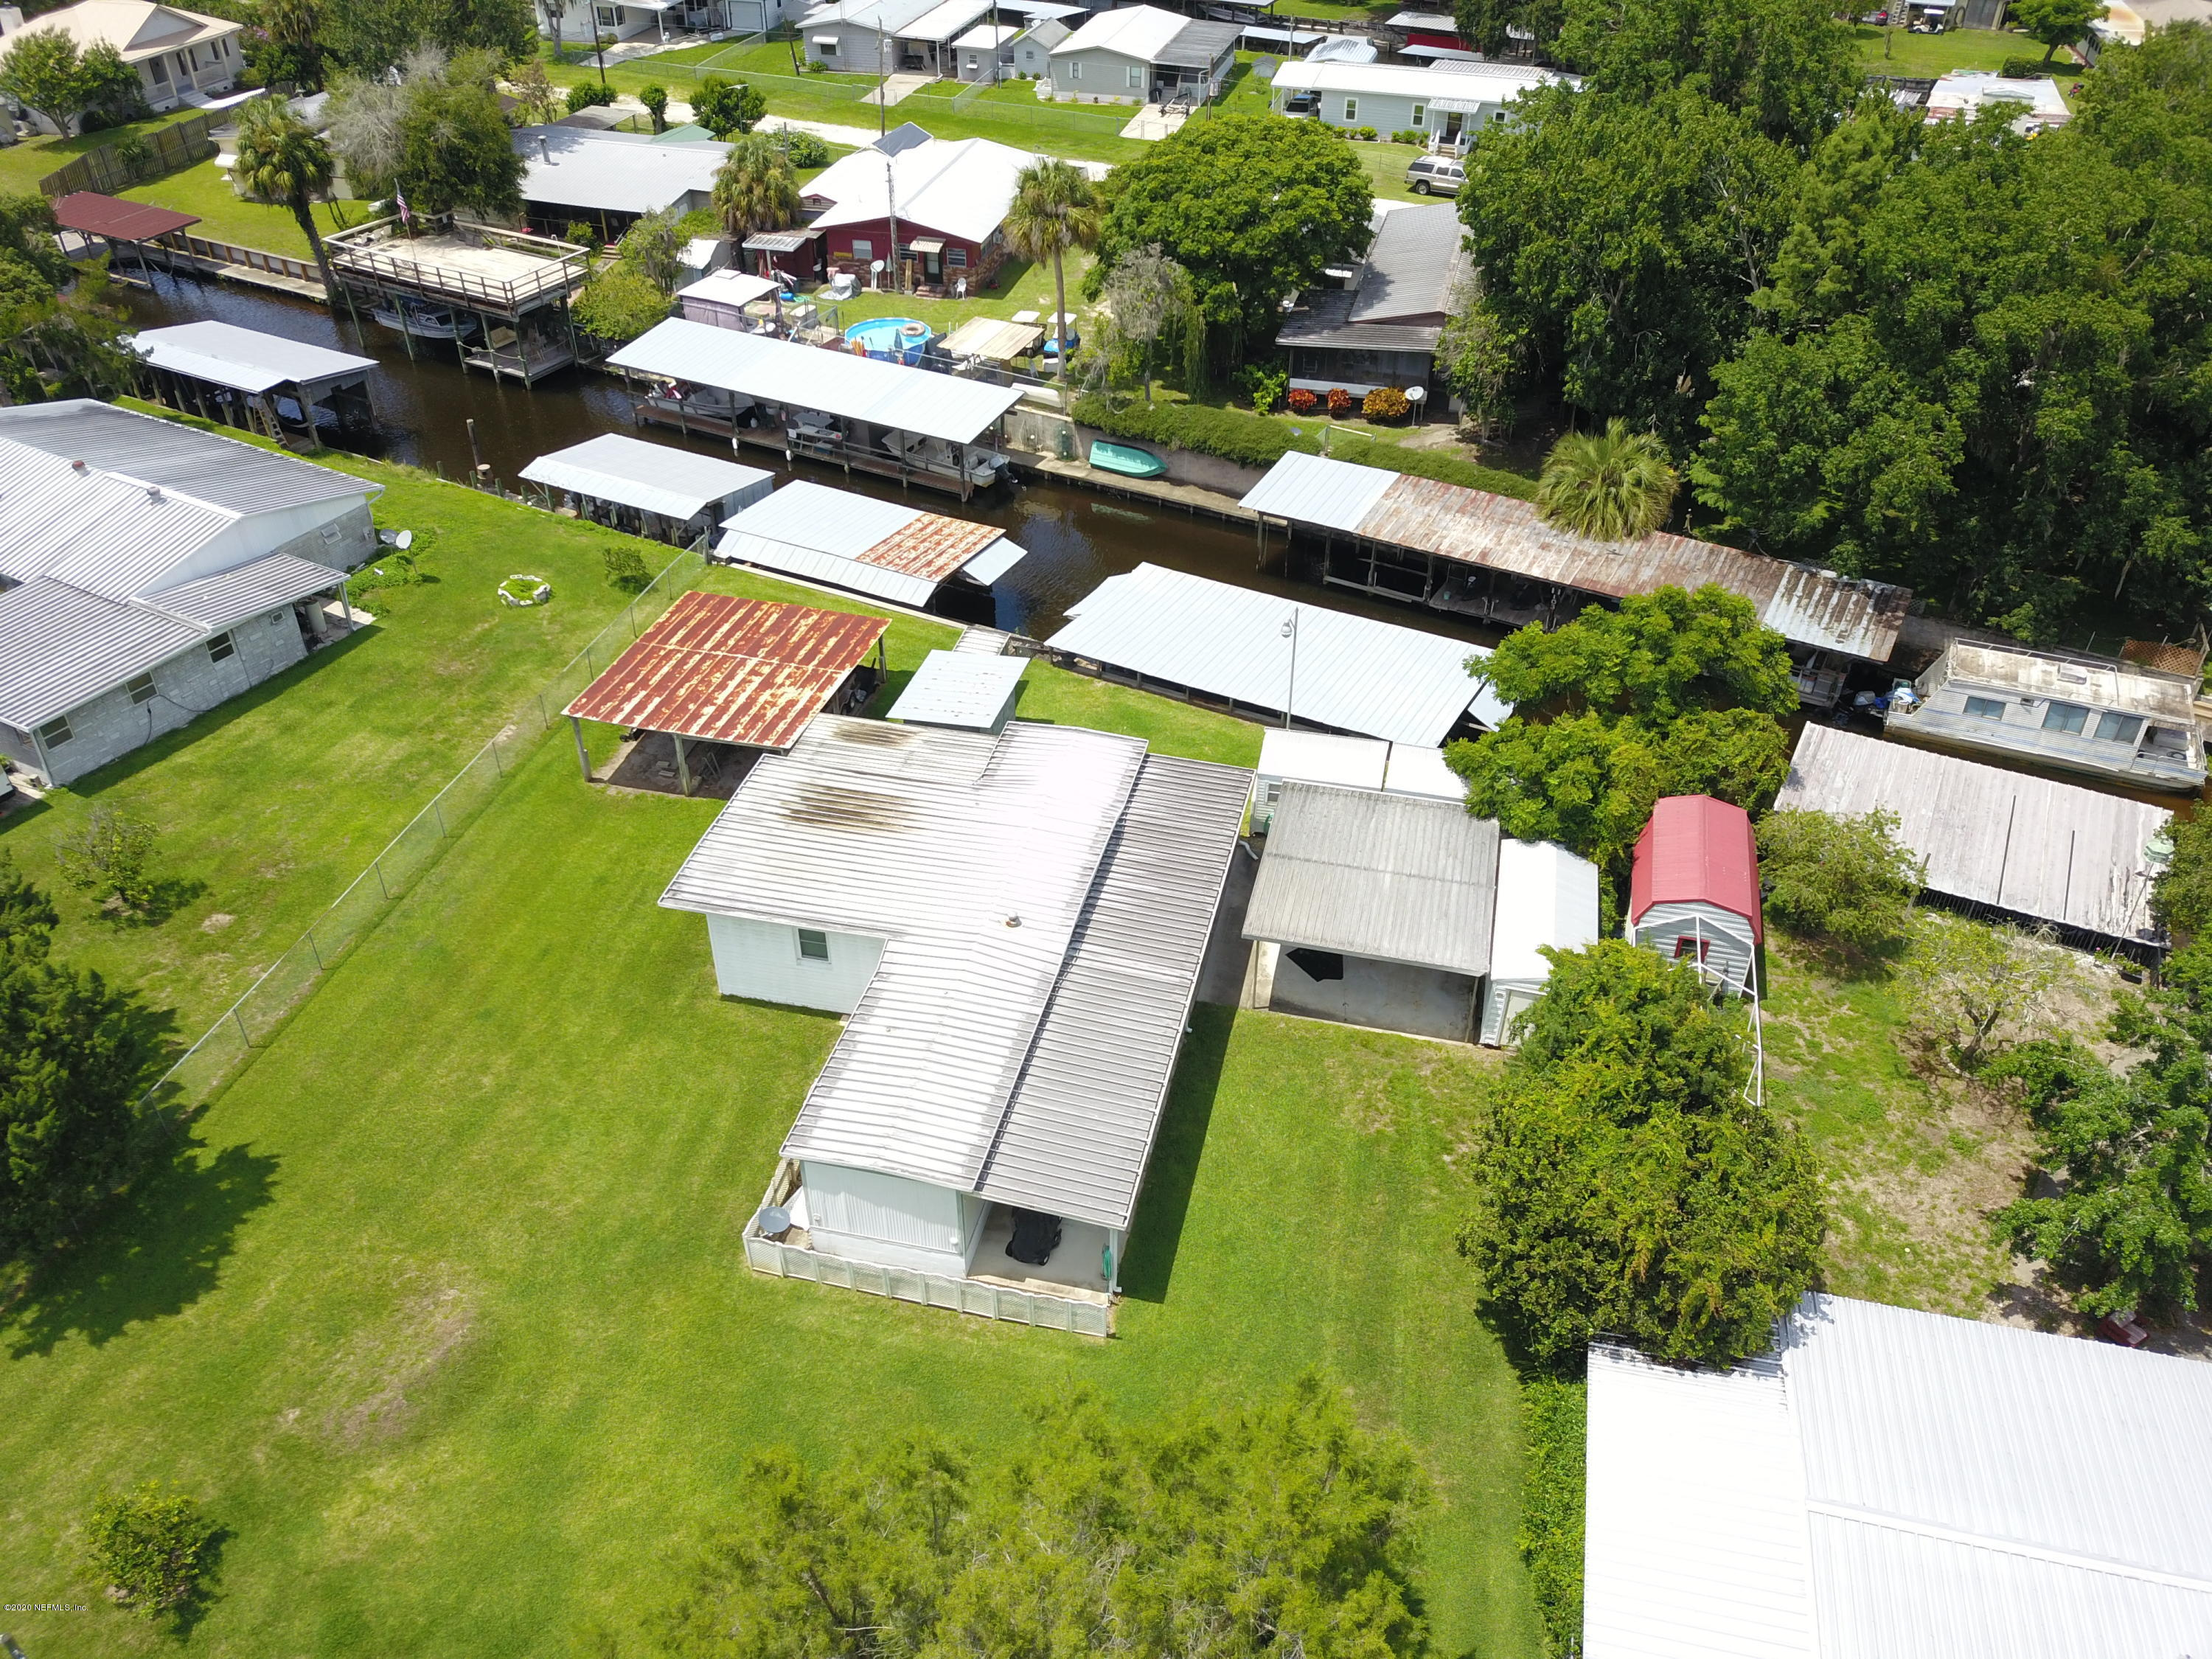 204 BROWNS FISH CAMP, CRESCENT CITY, FLORIDA 32112, 2 Bedrooms Bedrooms, ,1 BathroomBathrooms,Residential,For sale,BROWNS FISH CAMP,1059170